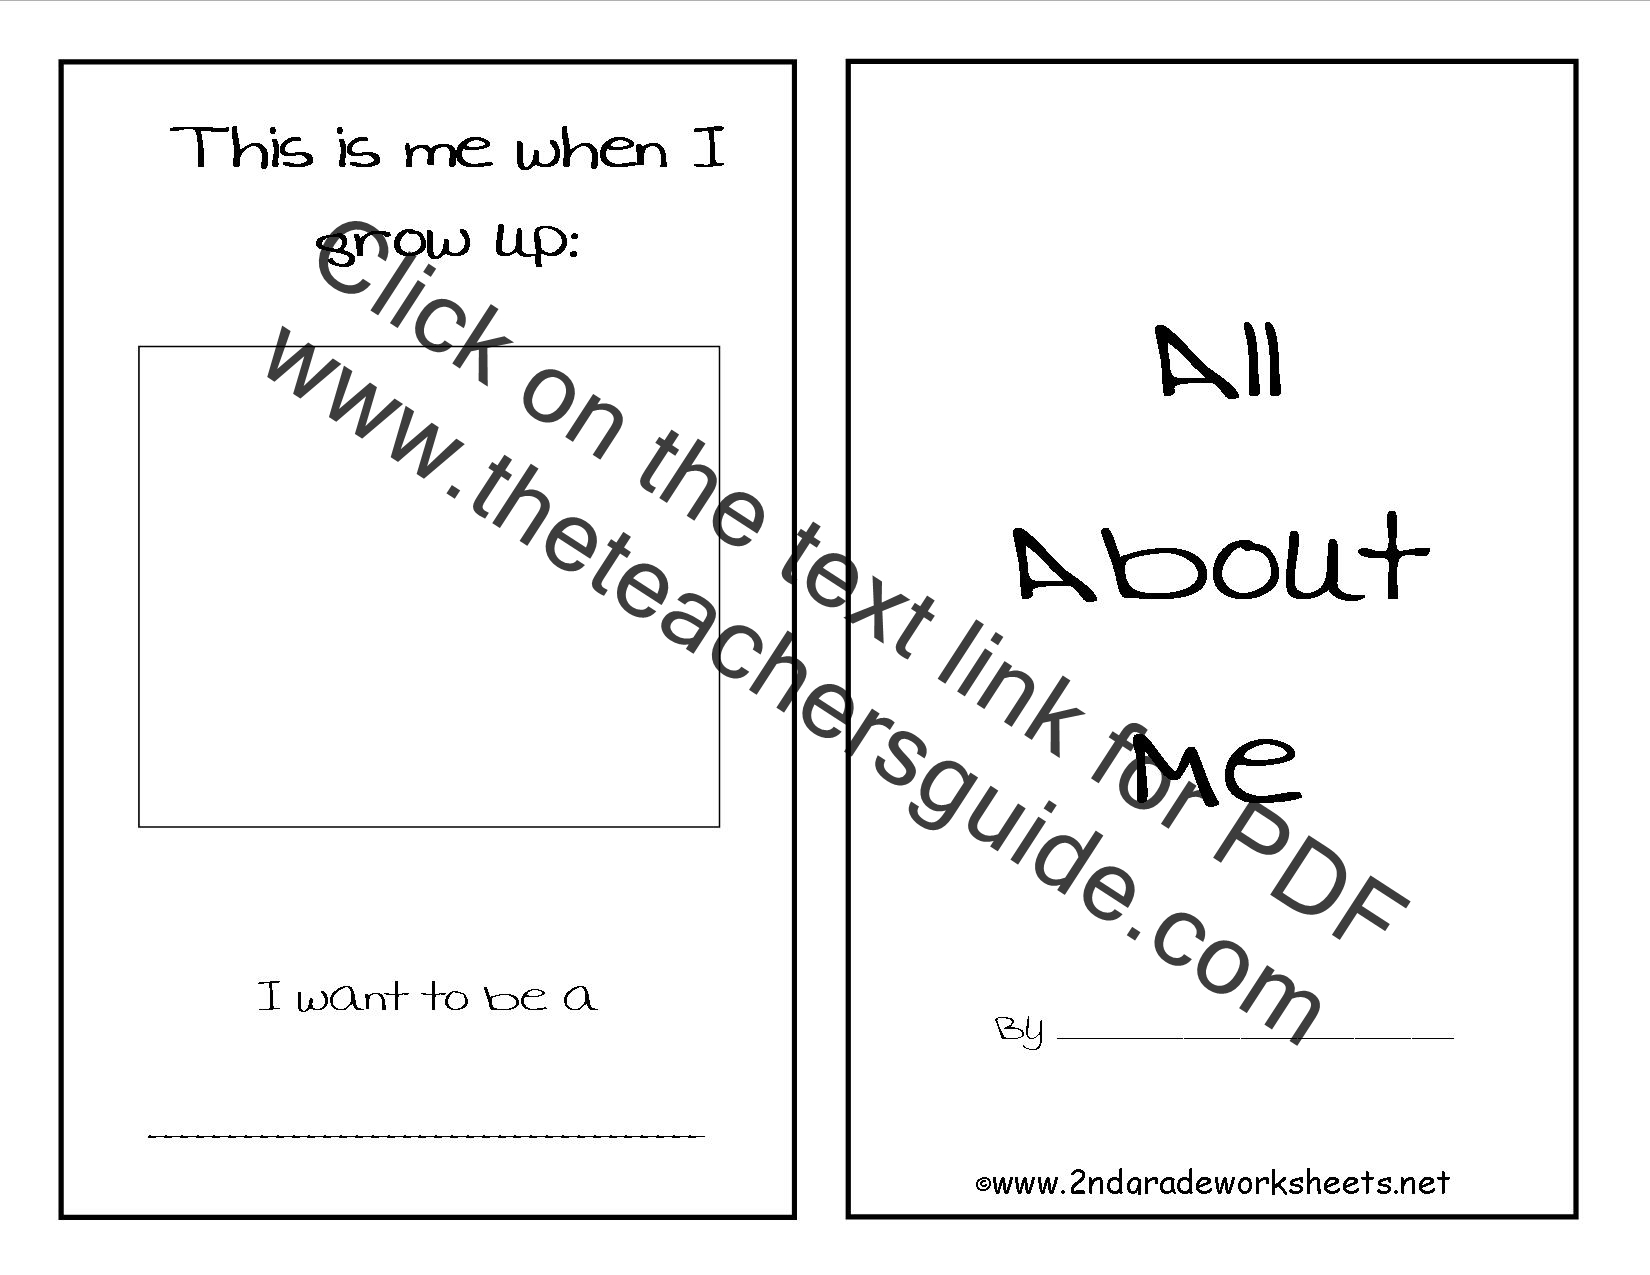 Free Back to School Worksheets and Printouts – Printable All About Me Worksheet